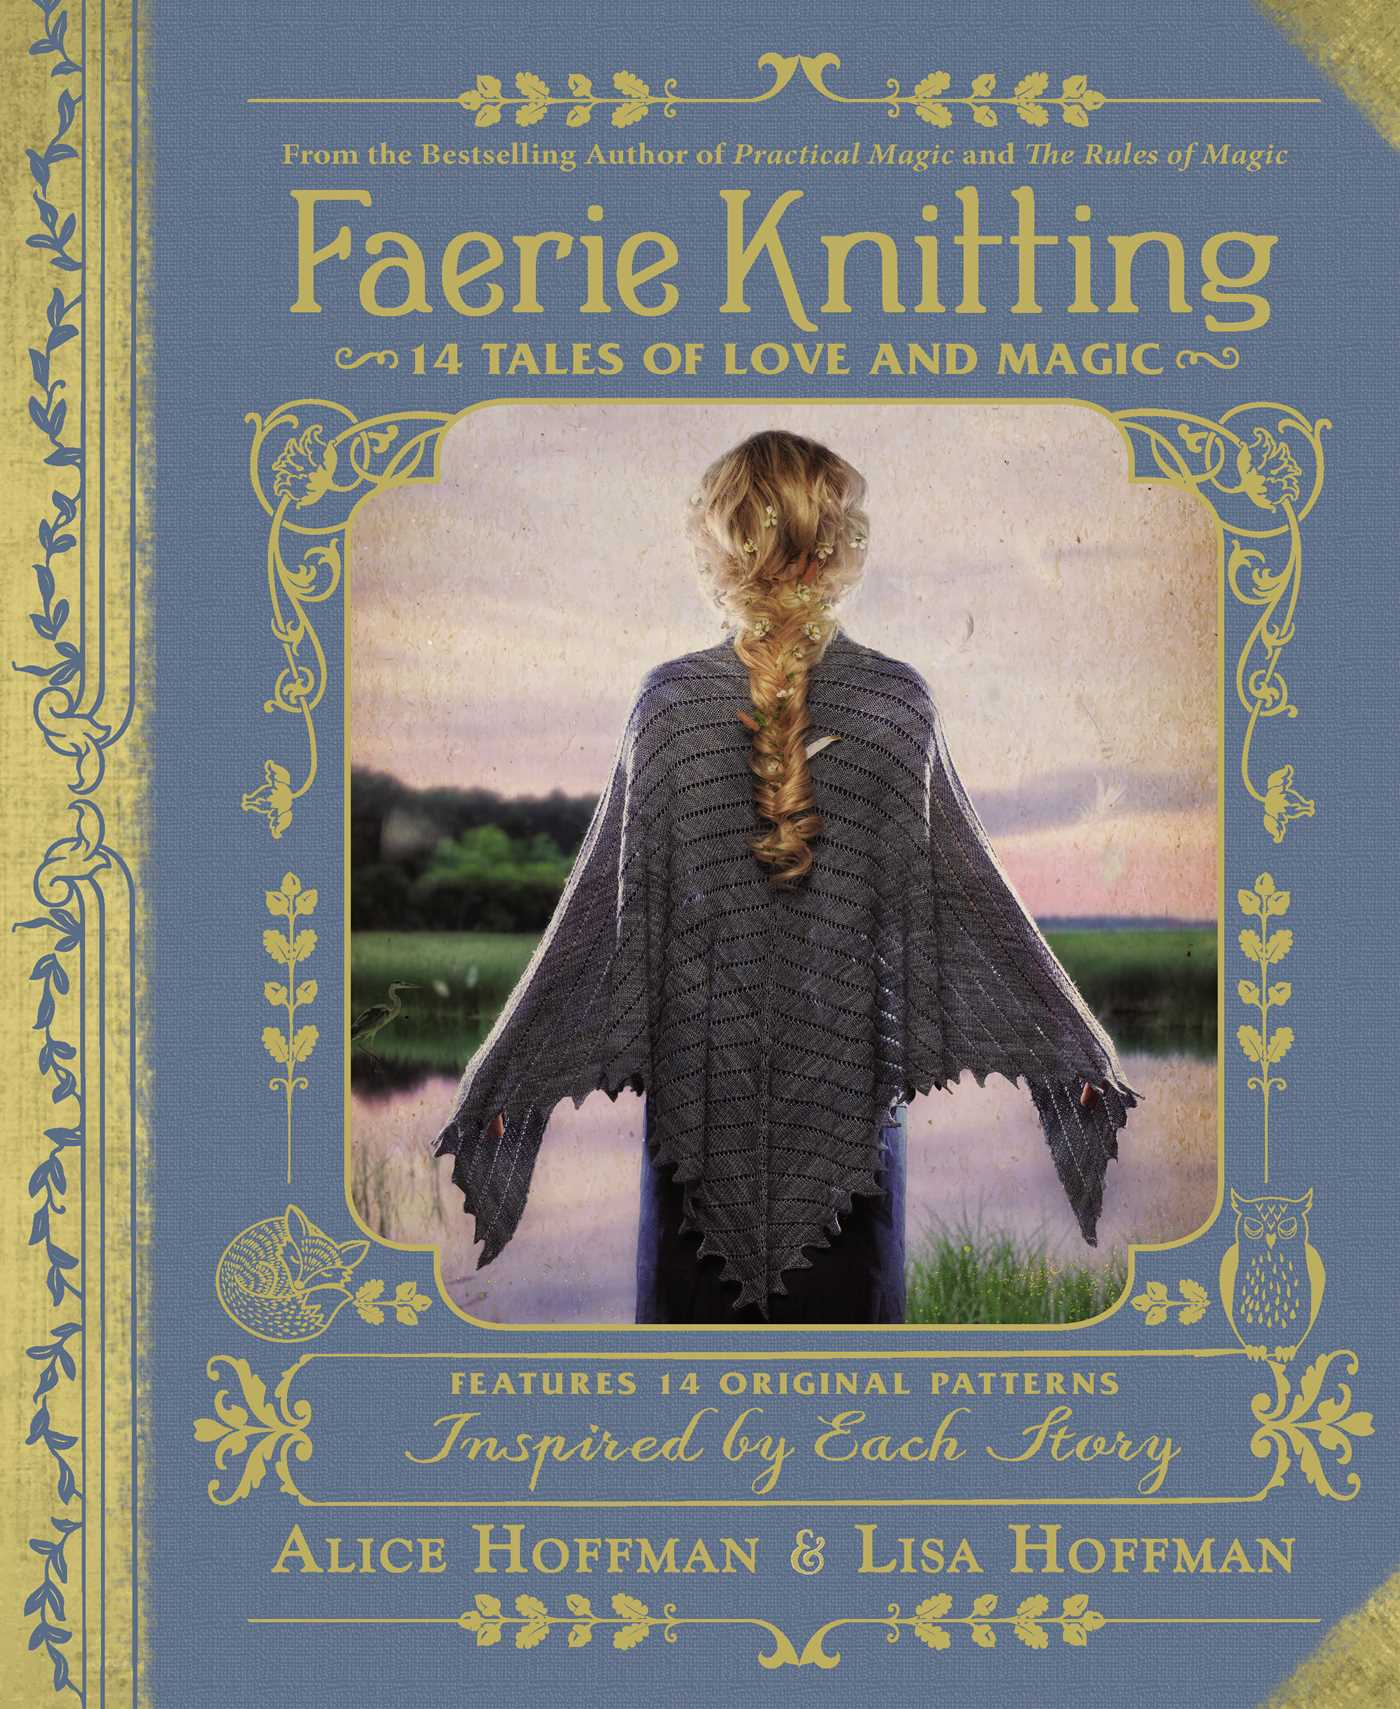 Faerie Knitting | Book by Alice Hoffman, Lisa Hoffman